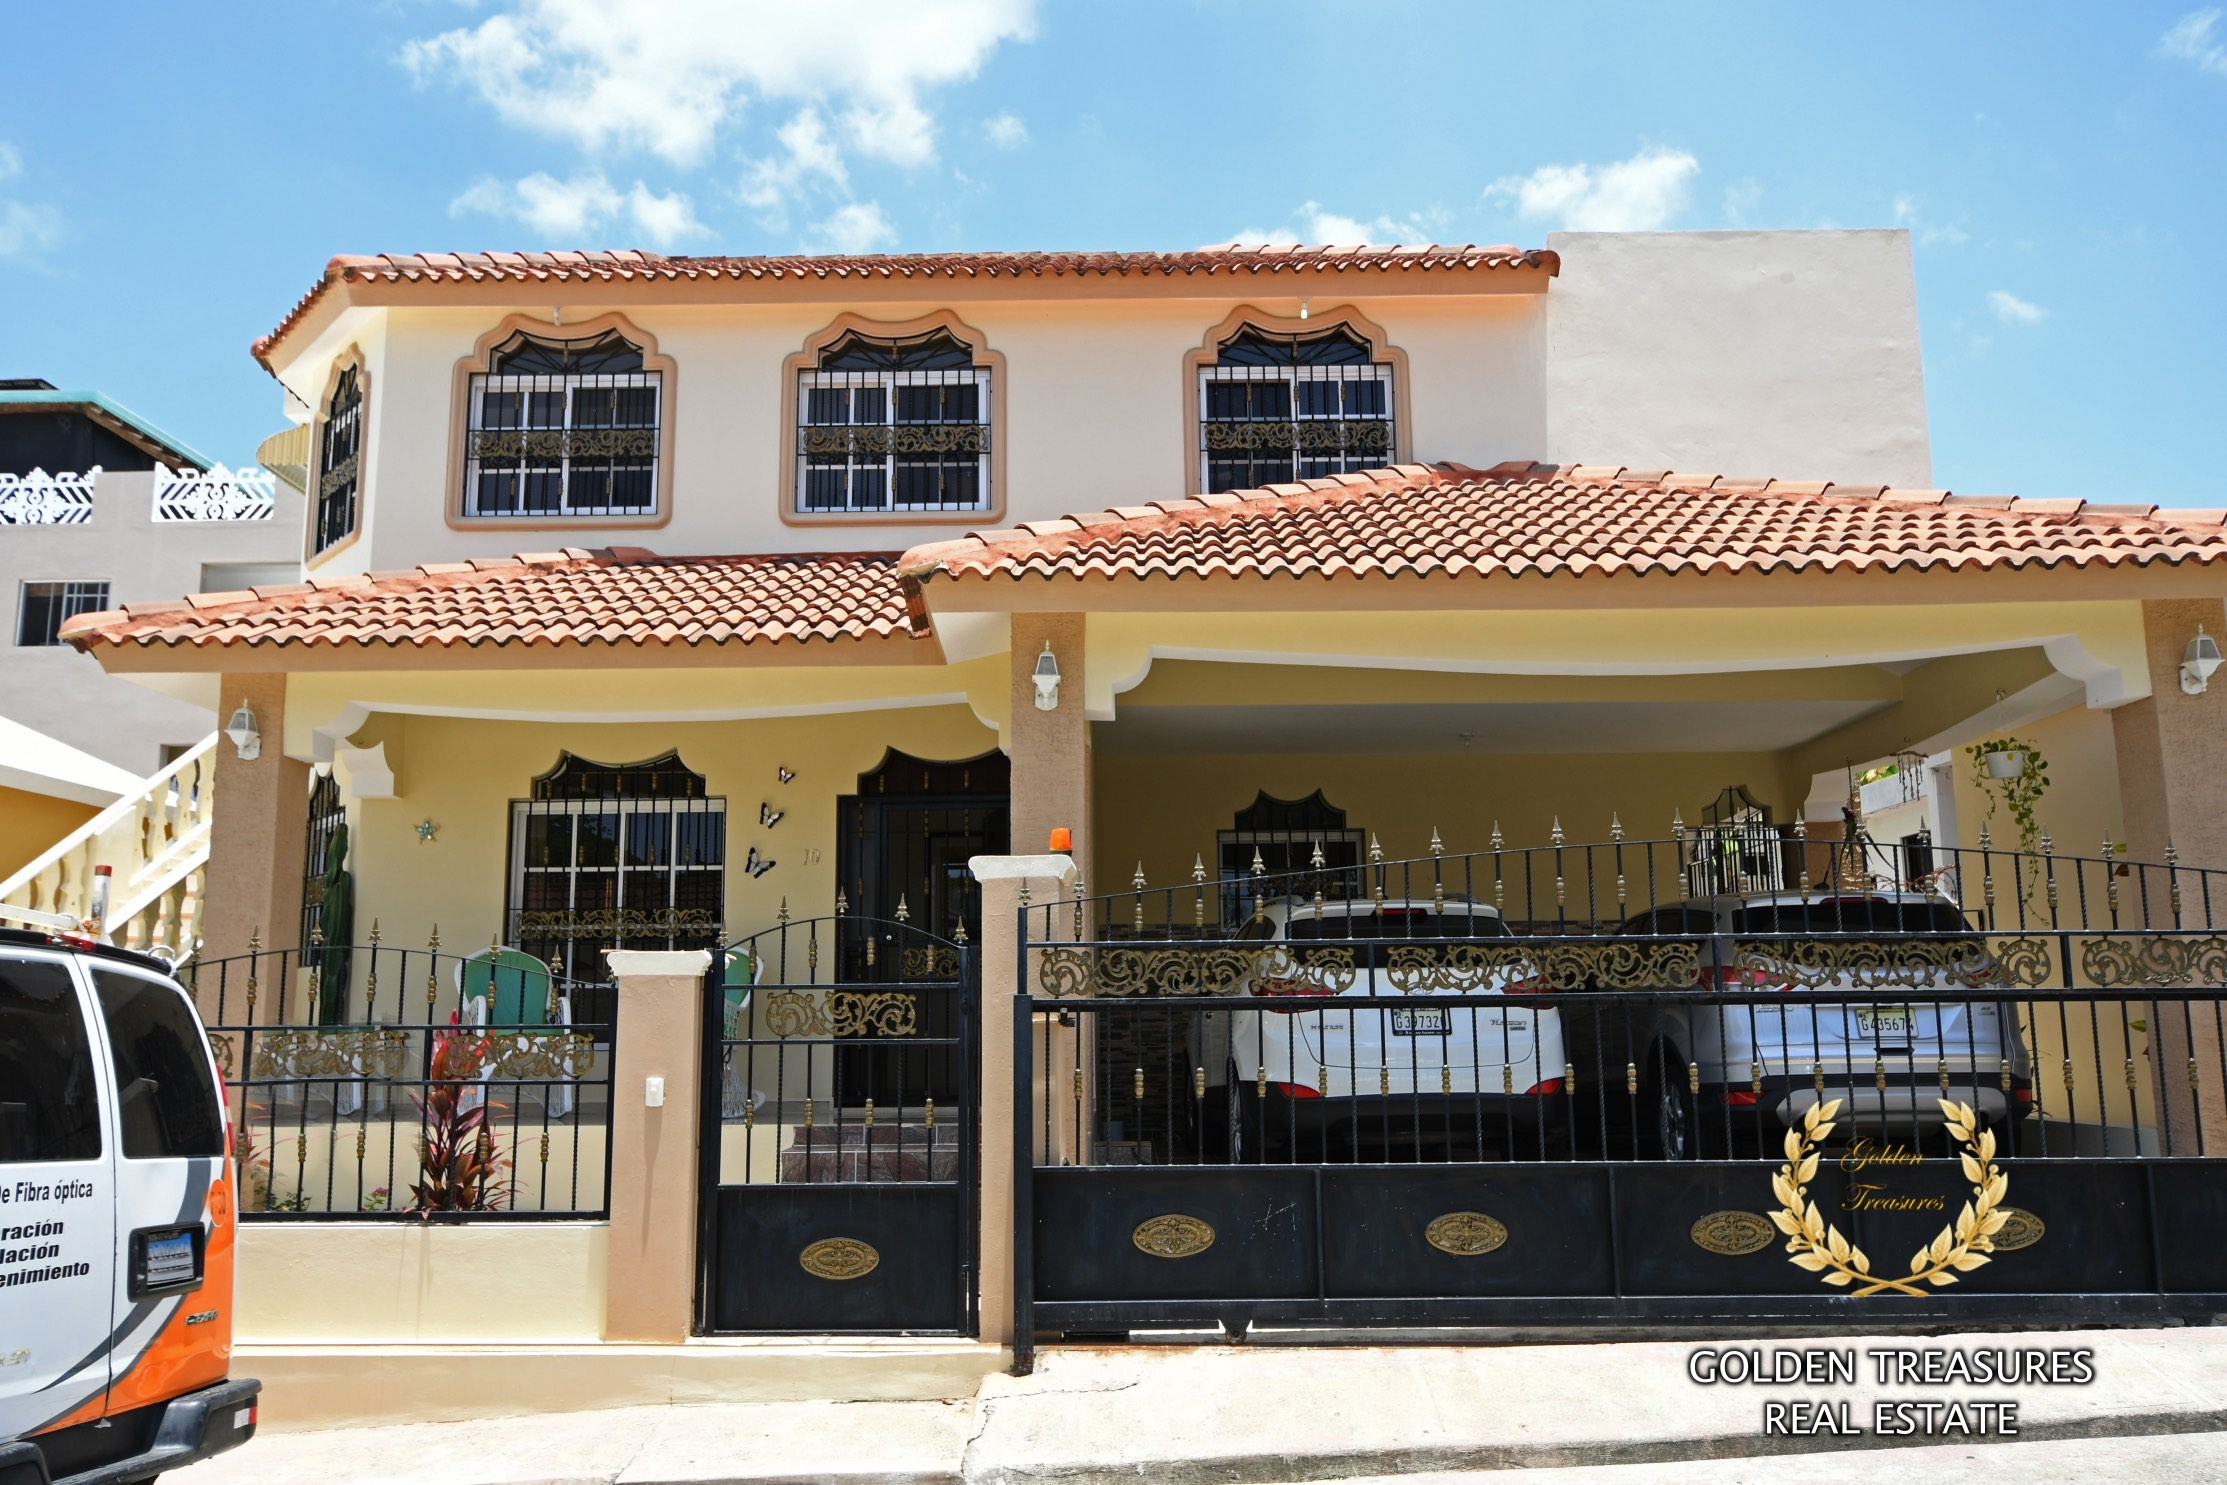 6 Bedroom Home Sale Puerto Plata